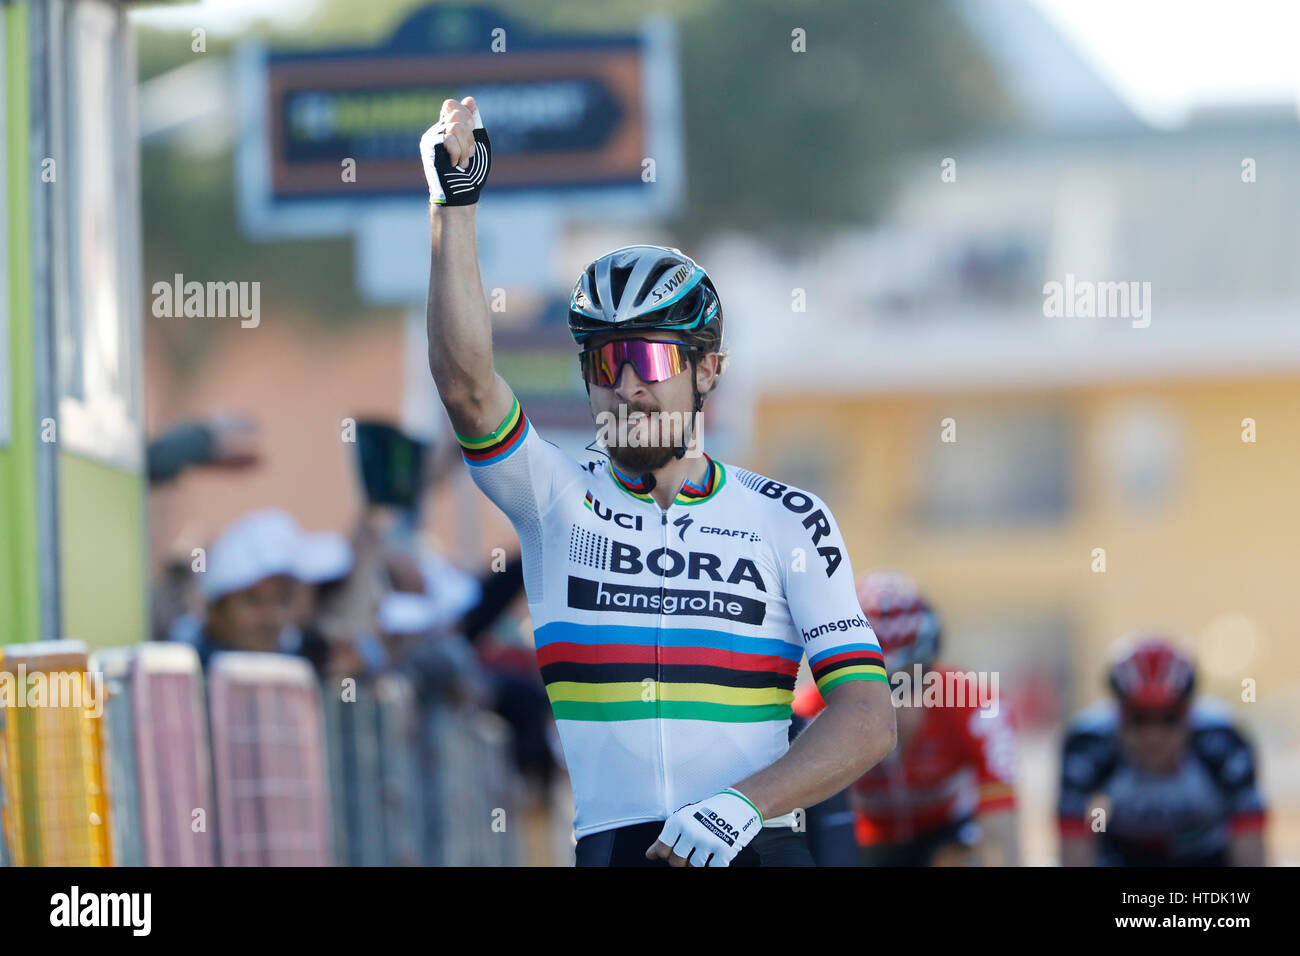 Bora Hansgrohe Stock Photos & Bora Hansgrohe Stock Images - Page 2 ...